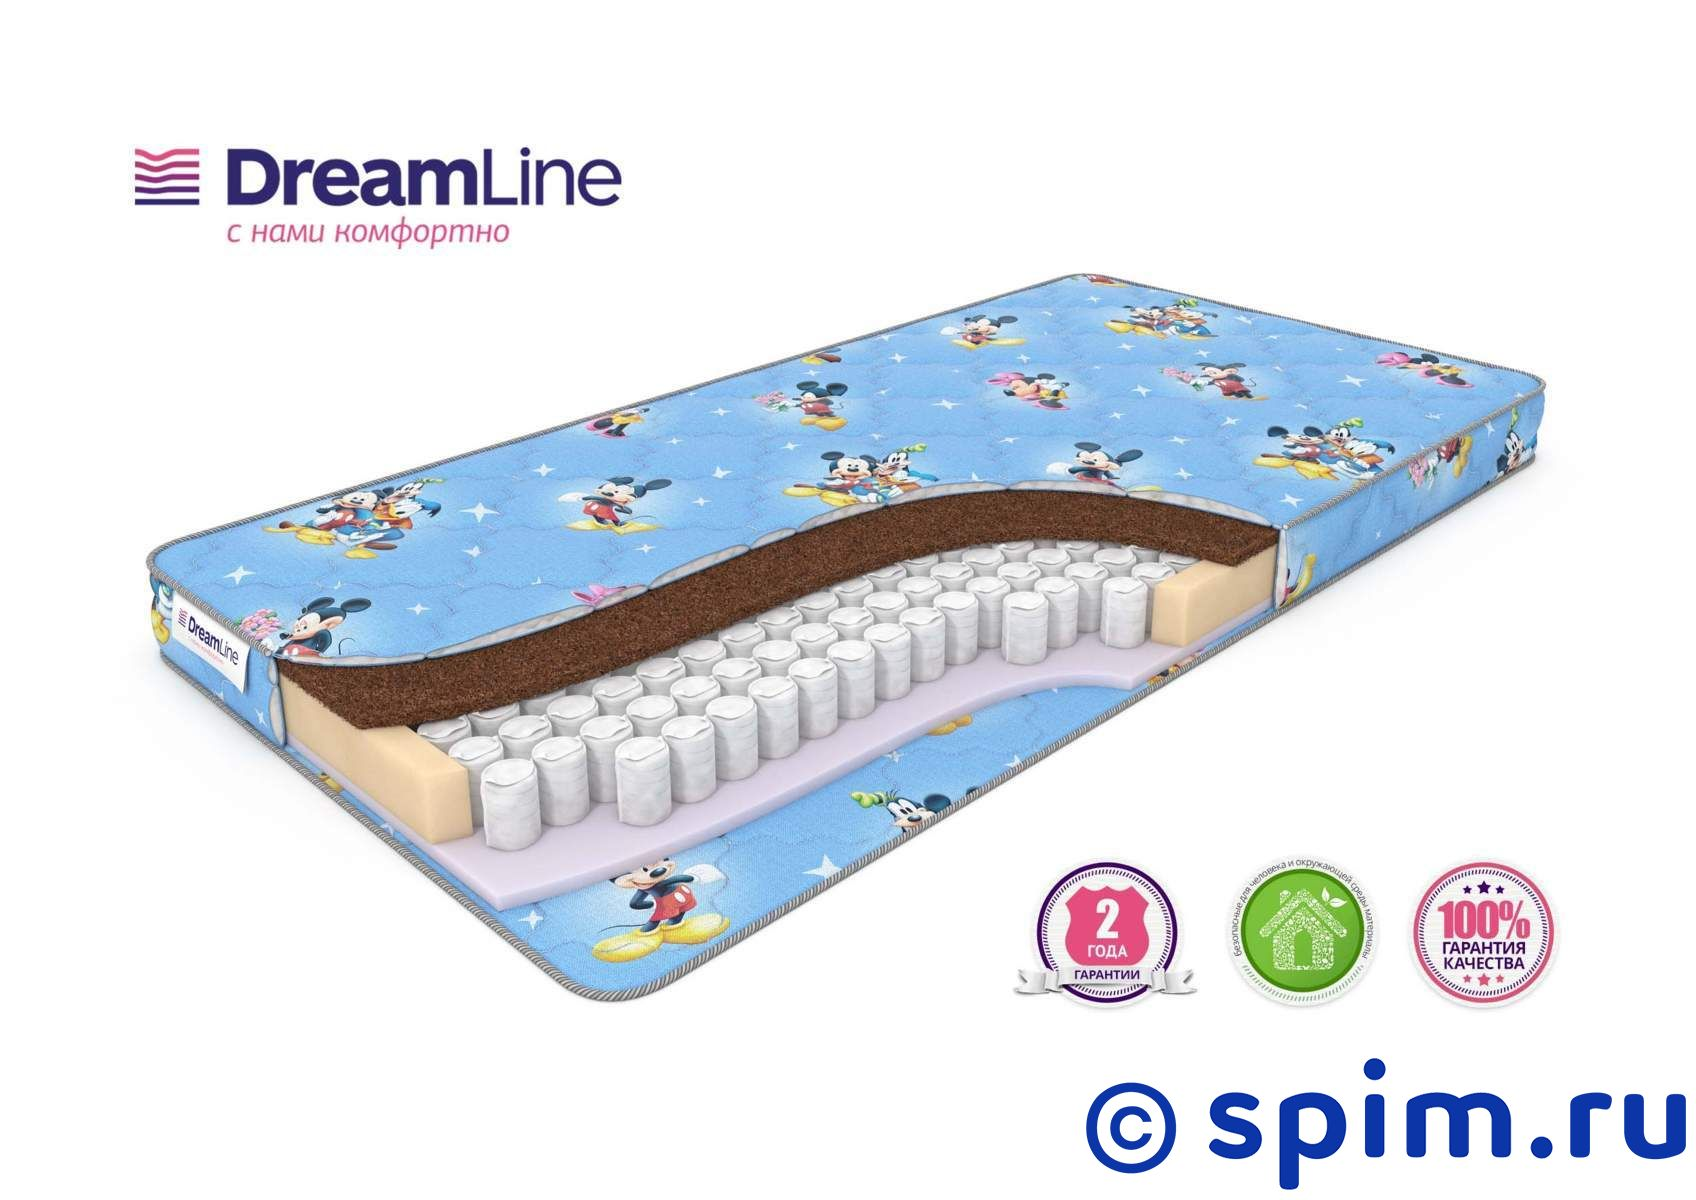 ������� ������ DreamLine Baby Sleep Dream Tfk 60�120 ��